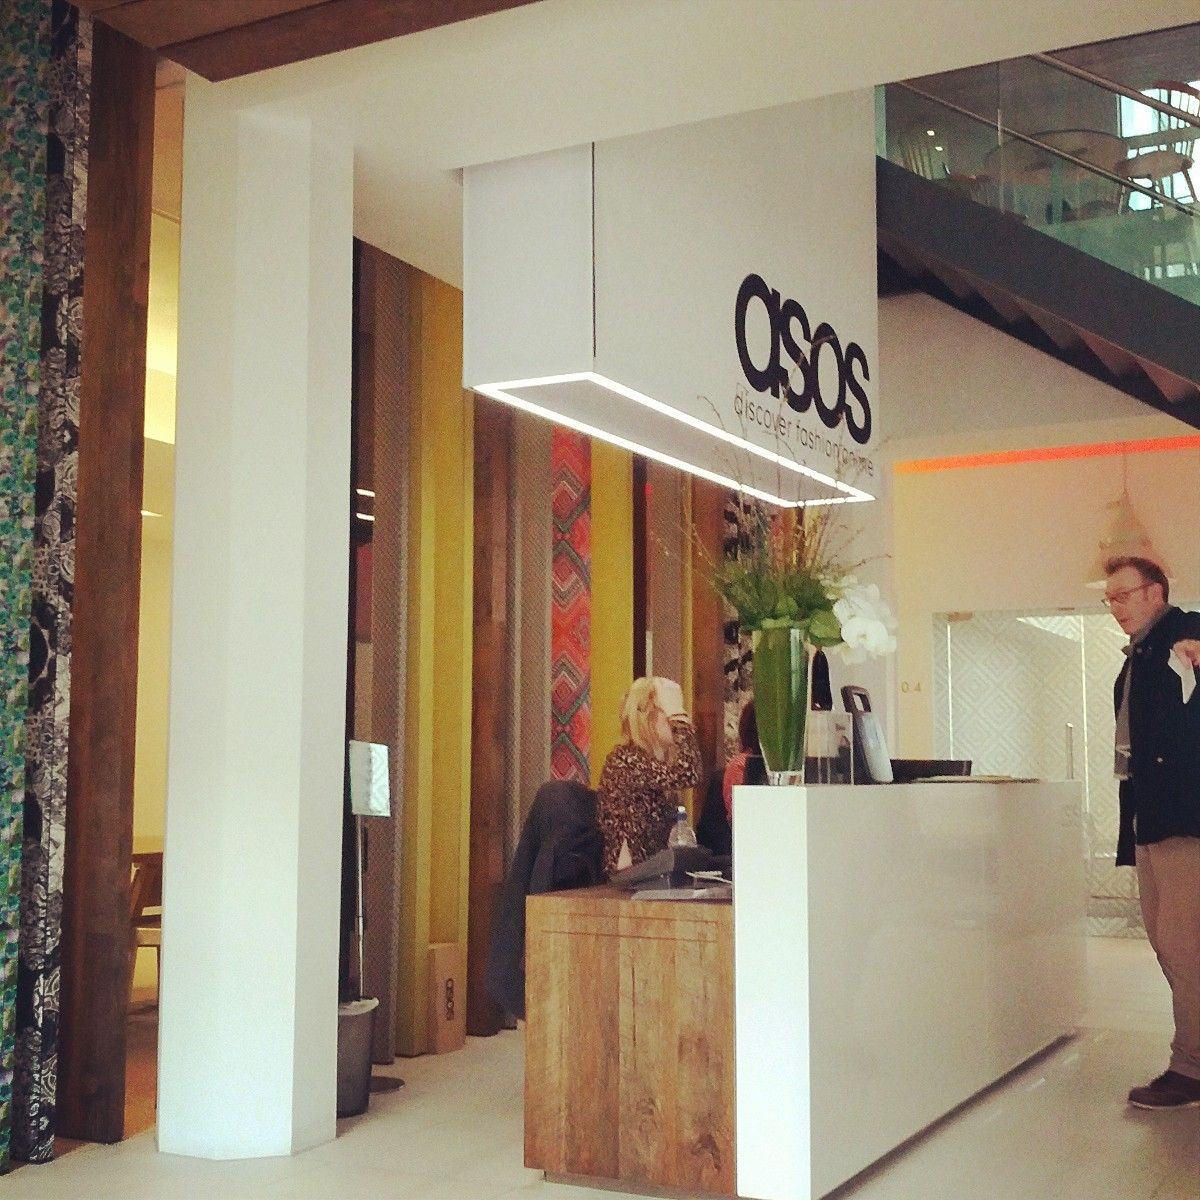 The next myHRcareers workshop will be hosted at ASOS headquartes in Mornington Crescent! Thank you ASOS for inviting us into your beautiful offices!